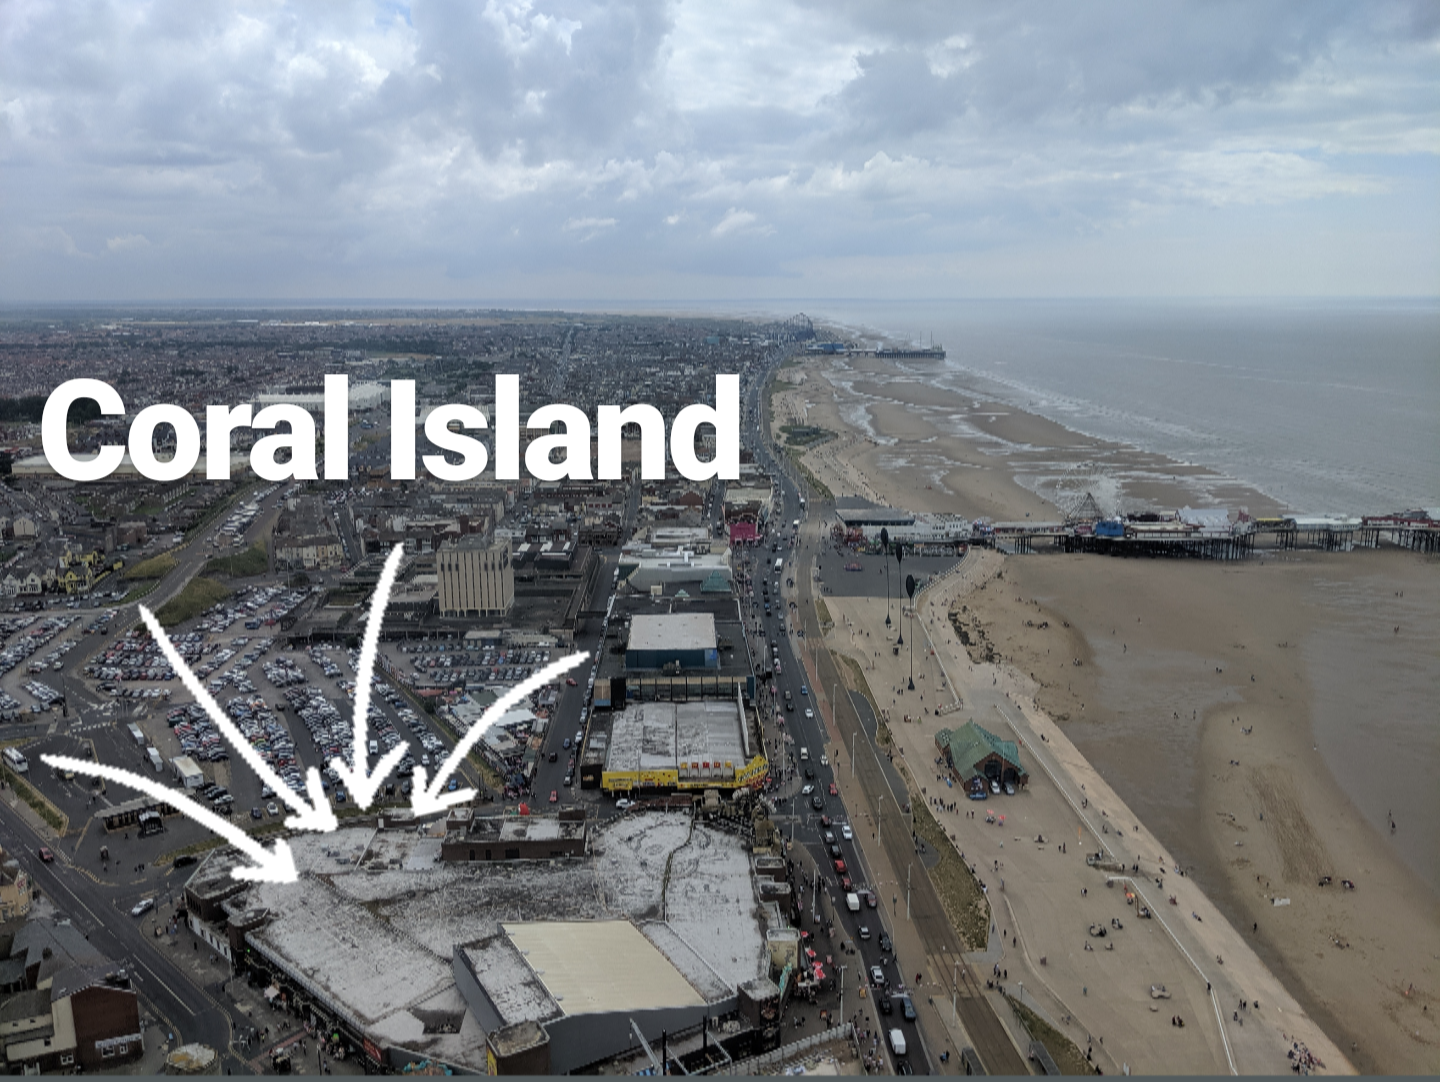 An A-Z Guide to Coral Island, Blackpool  - Coral Island from Blackpool Tower